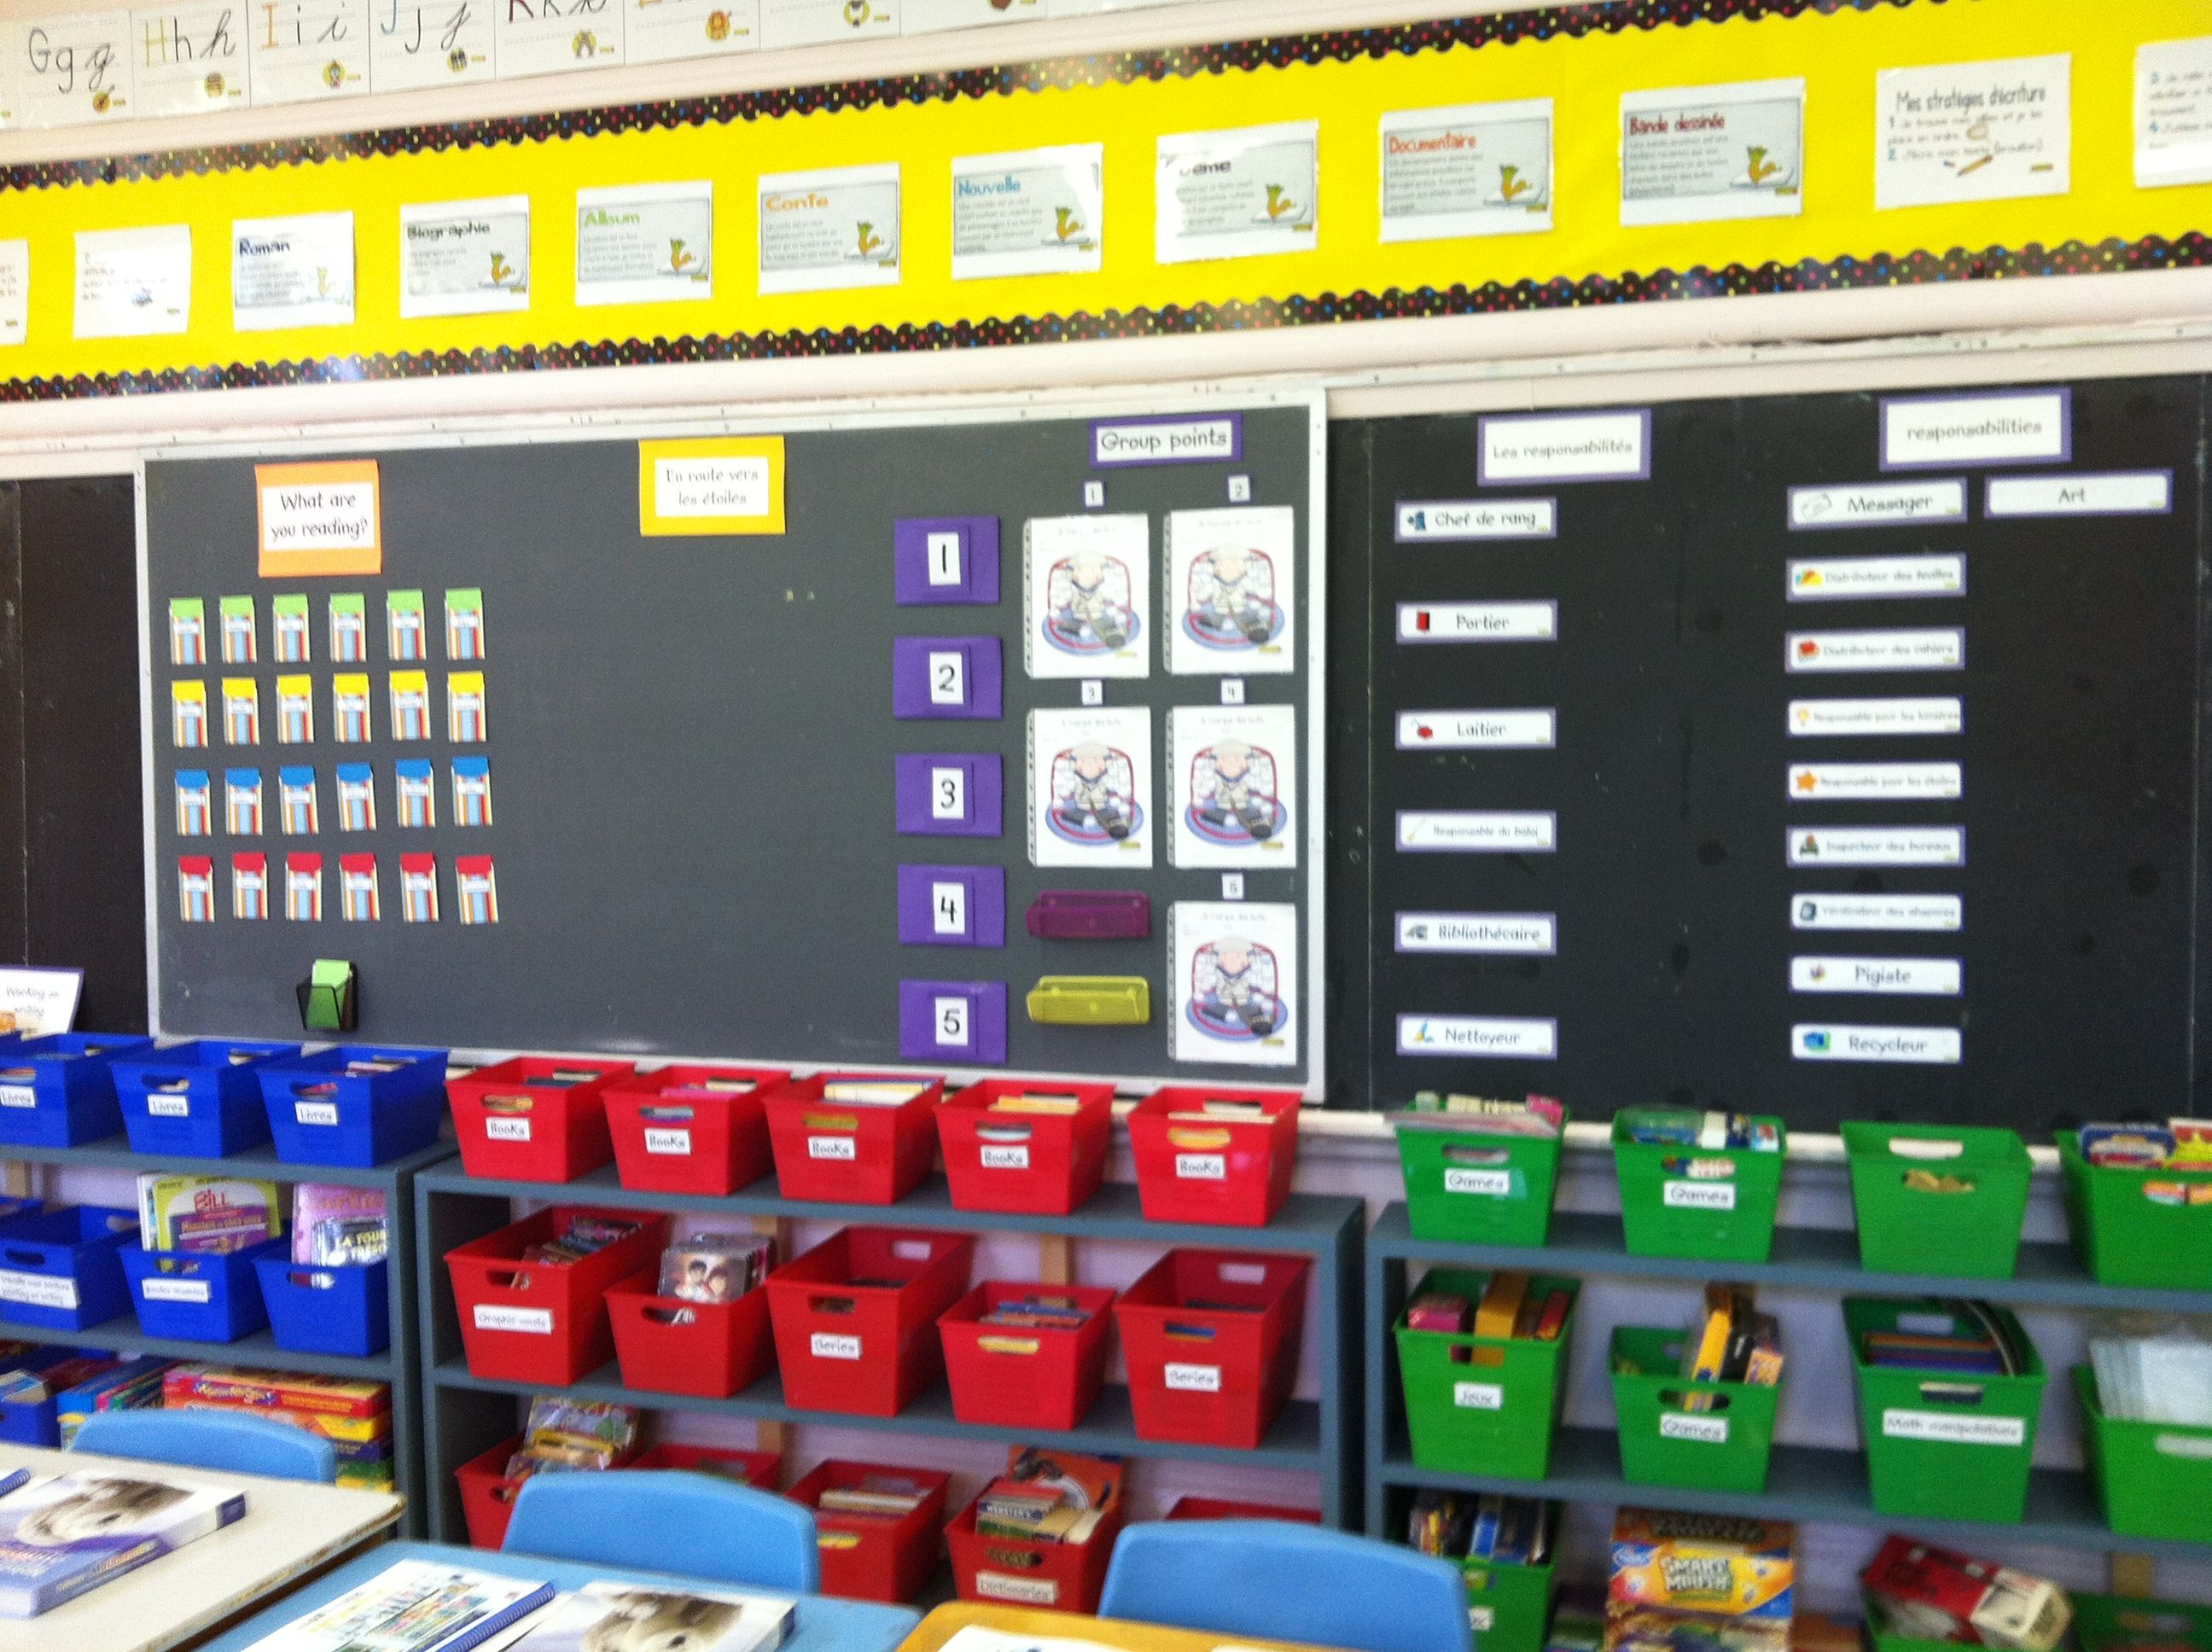 Organizing Classroom Materials